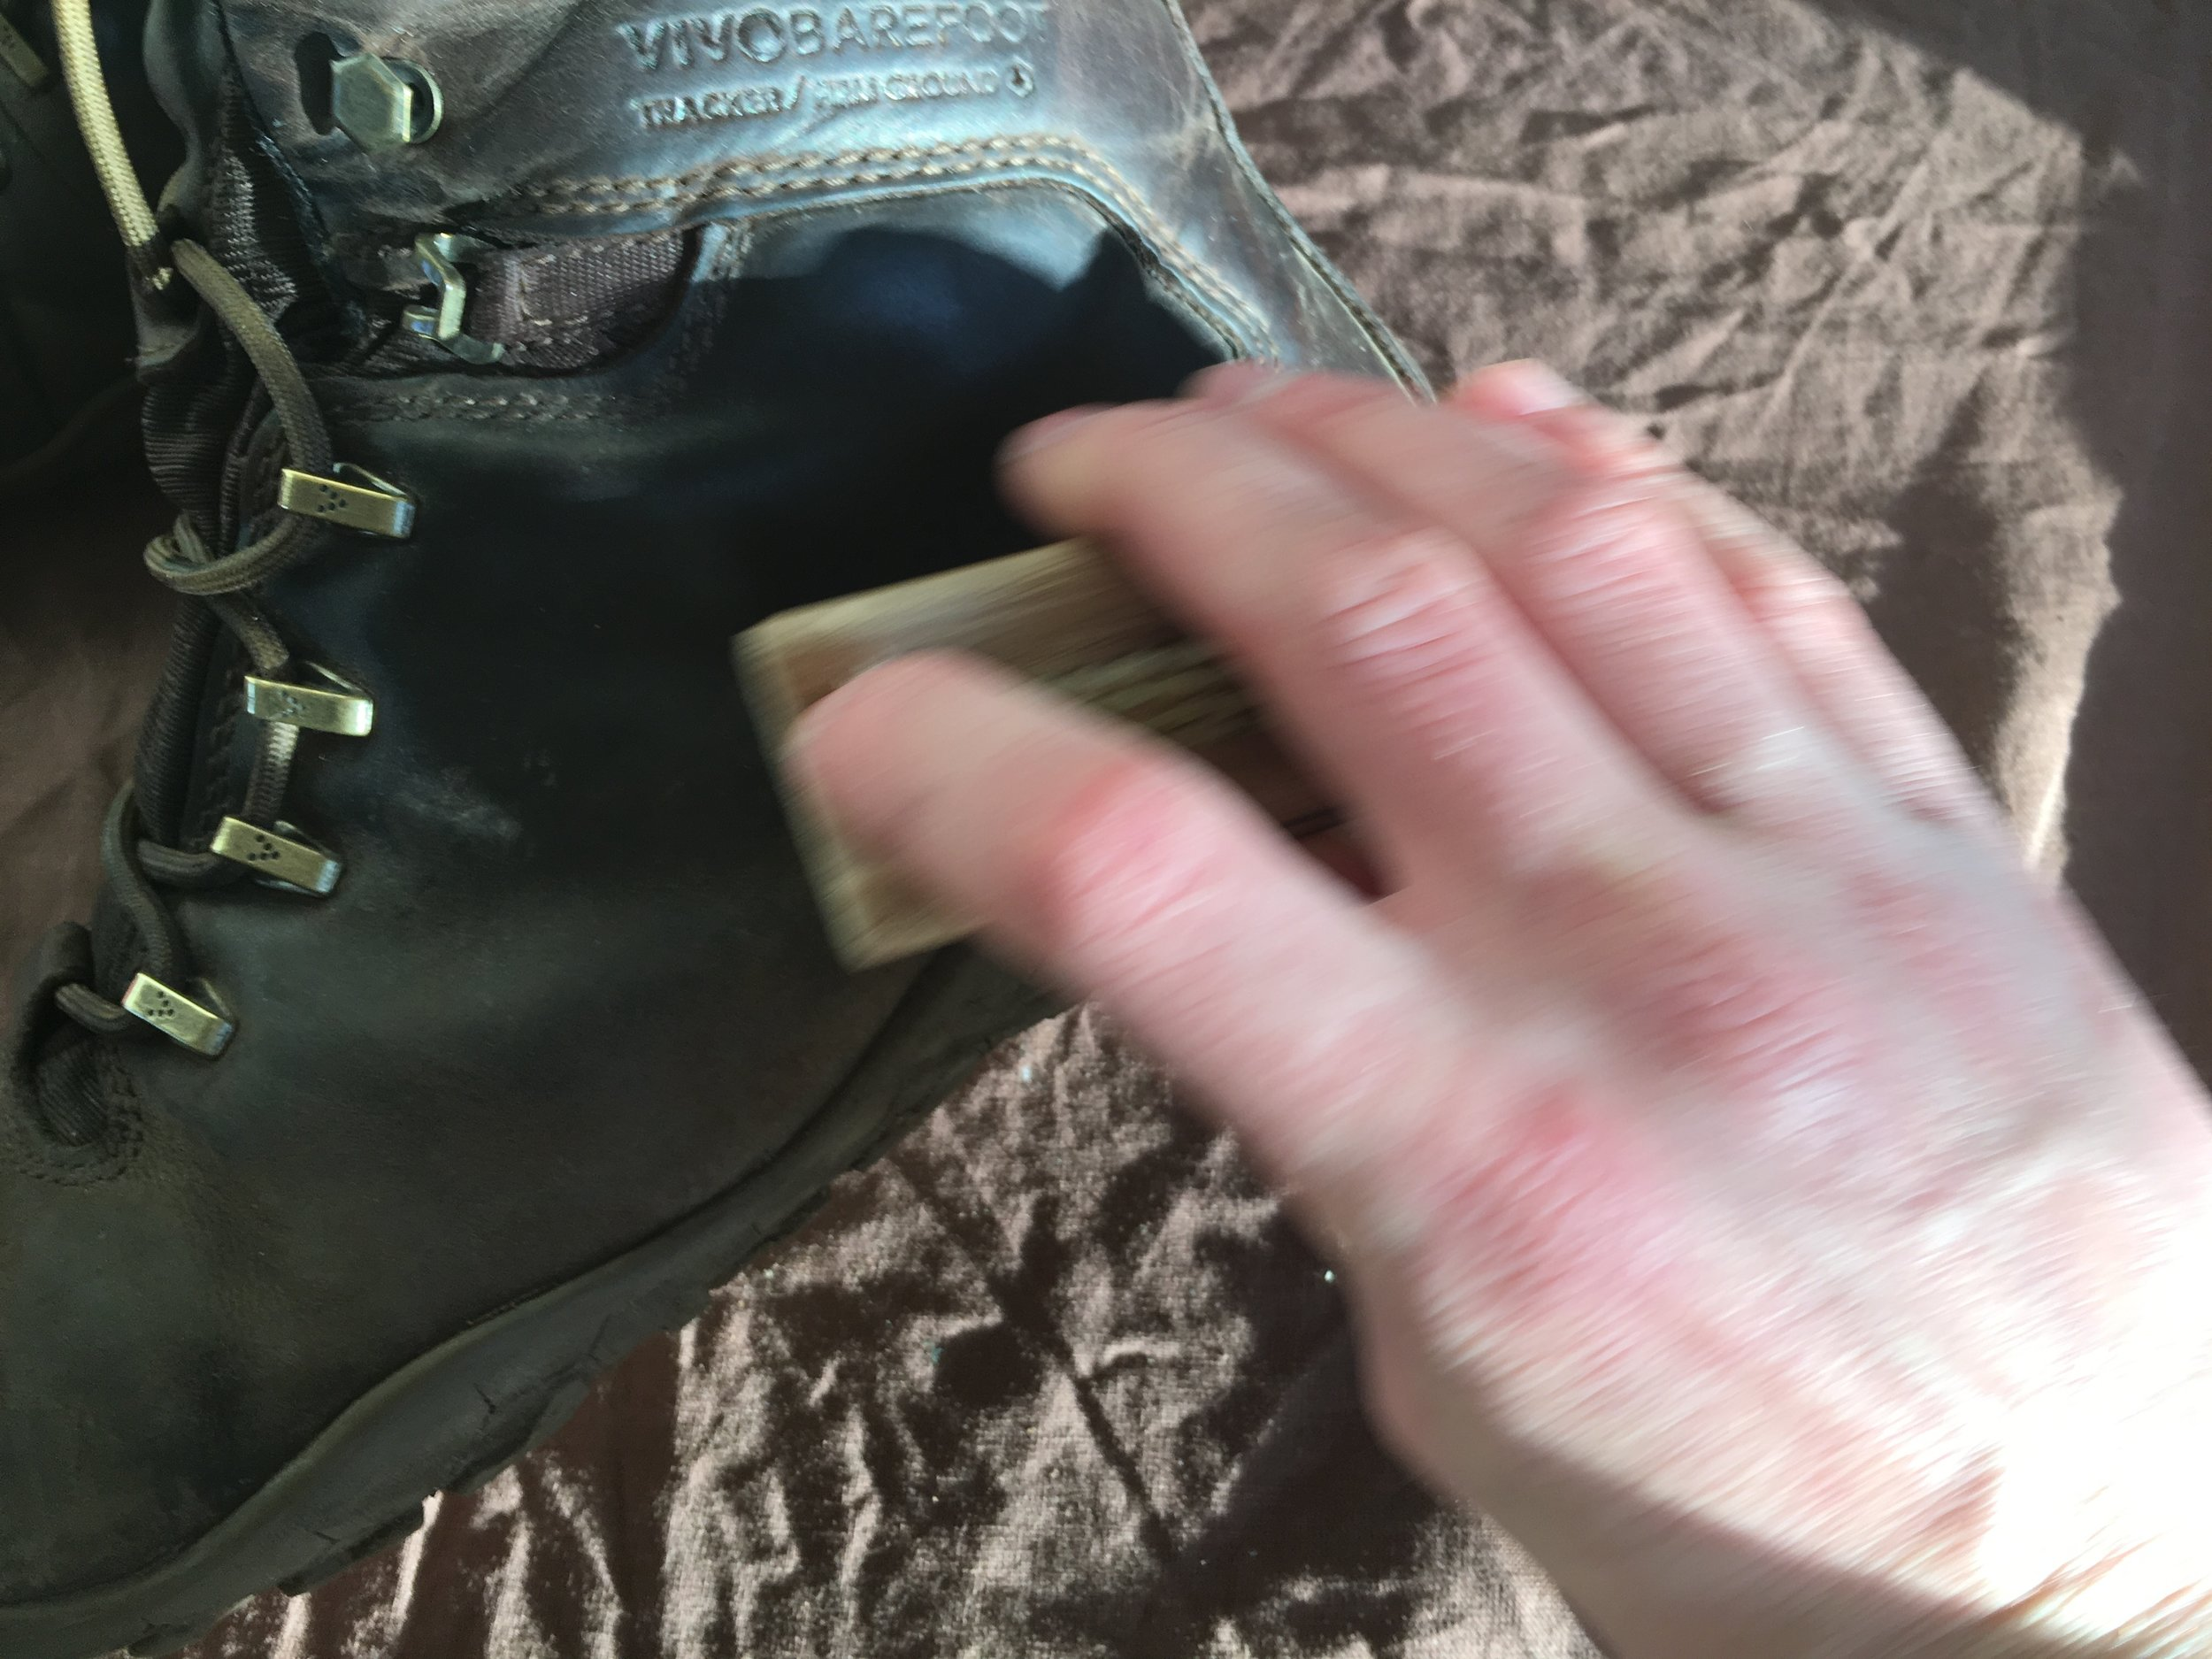 brush boot to remove built up dirt